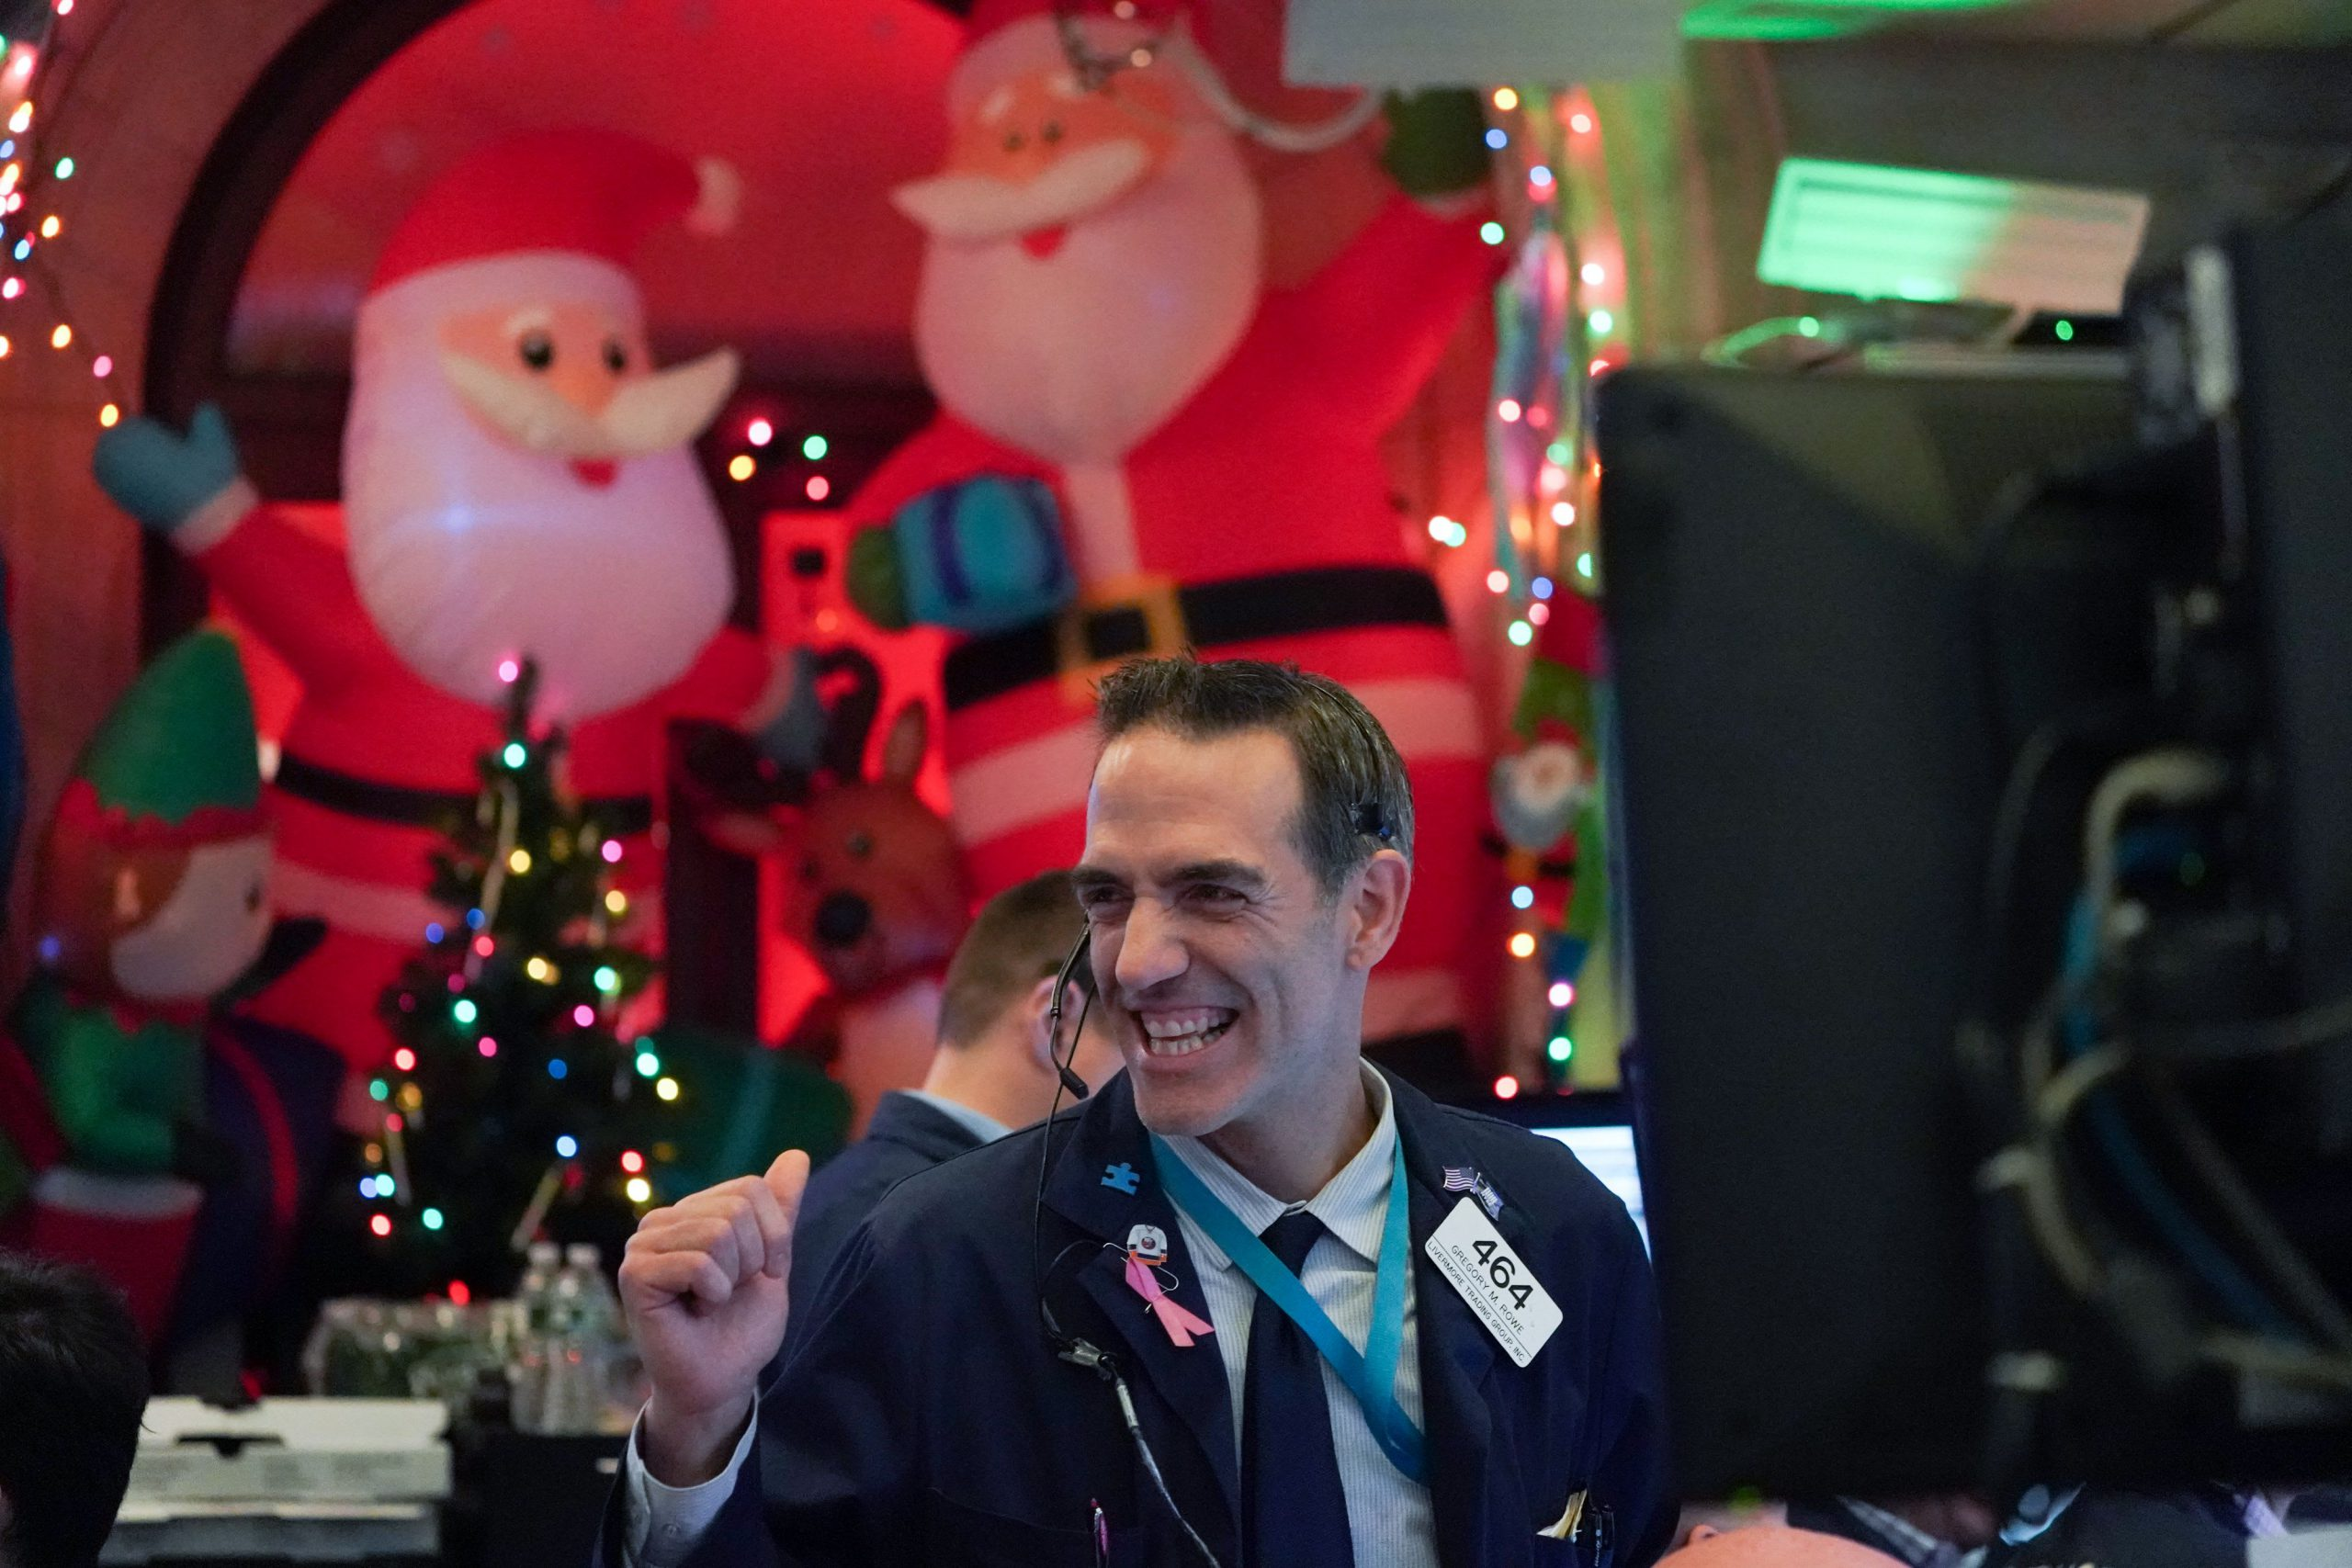 A lot's changed since the market panic last Christmas Eve with the S&P 500 up nearly 40% since